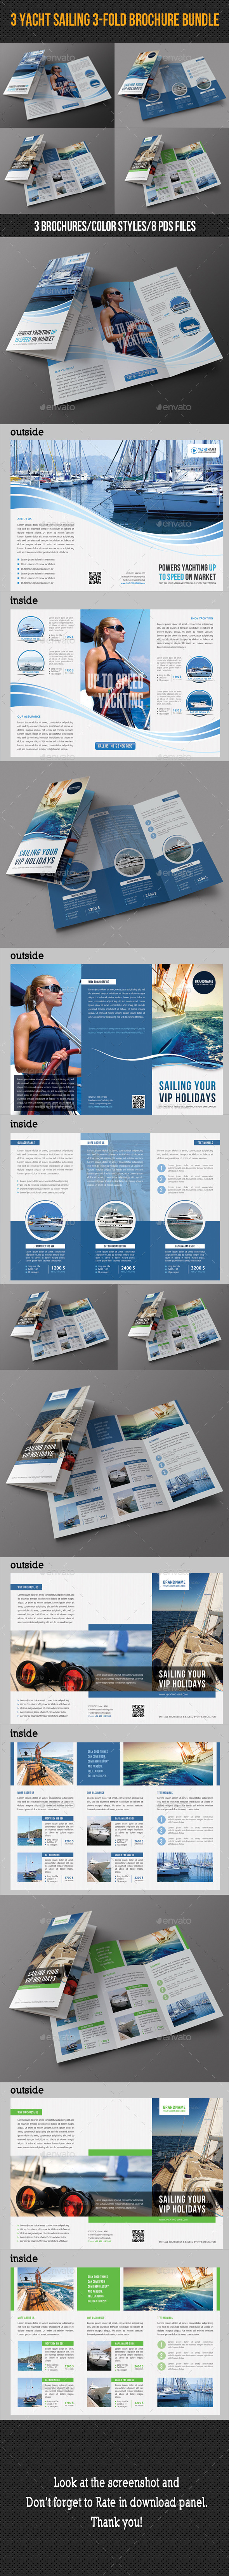 GraphicRiver 3 in 1 Sailing Travel Trifold Brochure Bundle 8909951